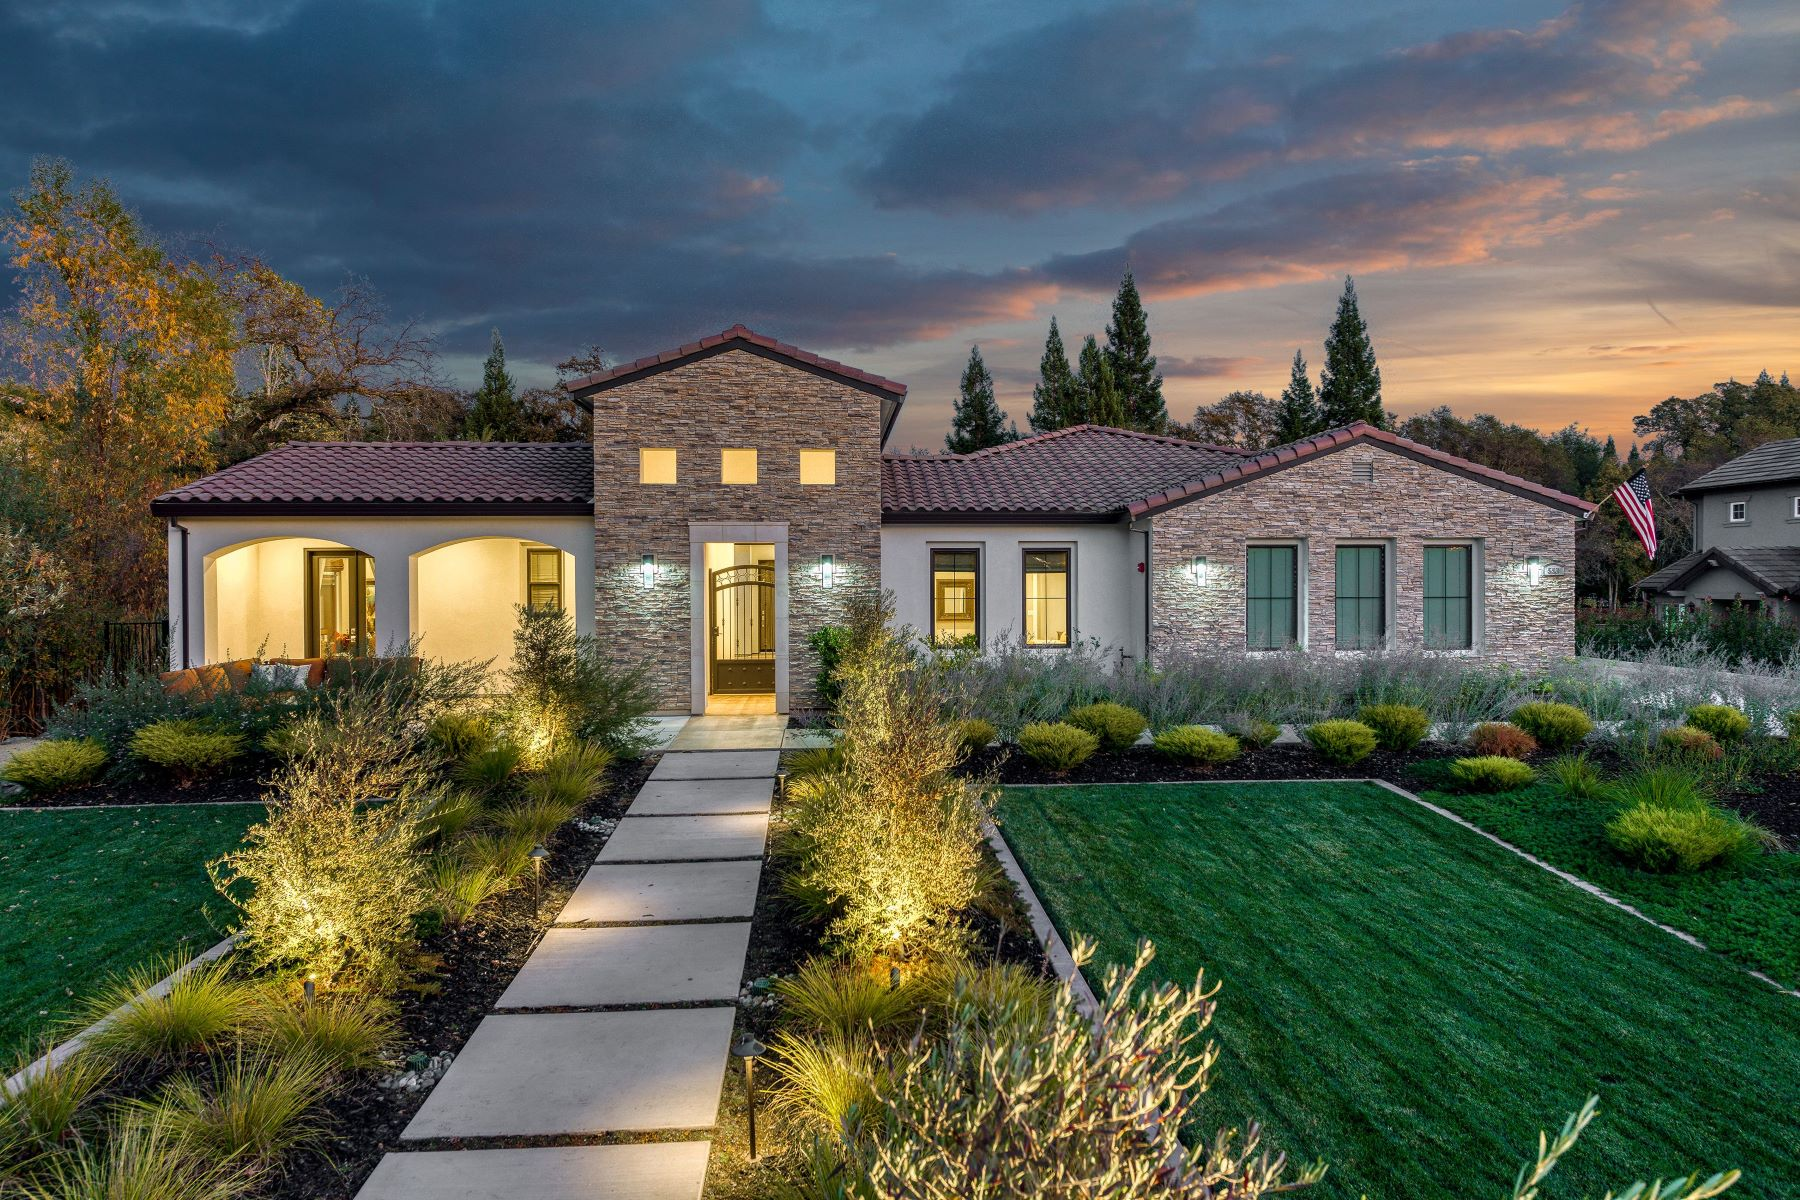 Single Family Homes for Sale at 5531 Monte Claire, Loomis, CA 95650 5531 Monte Claire Loomis, California 95650 United States